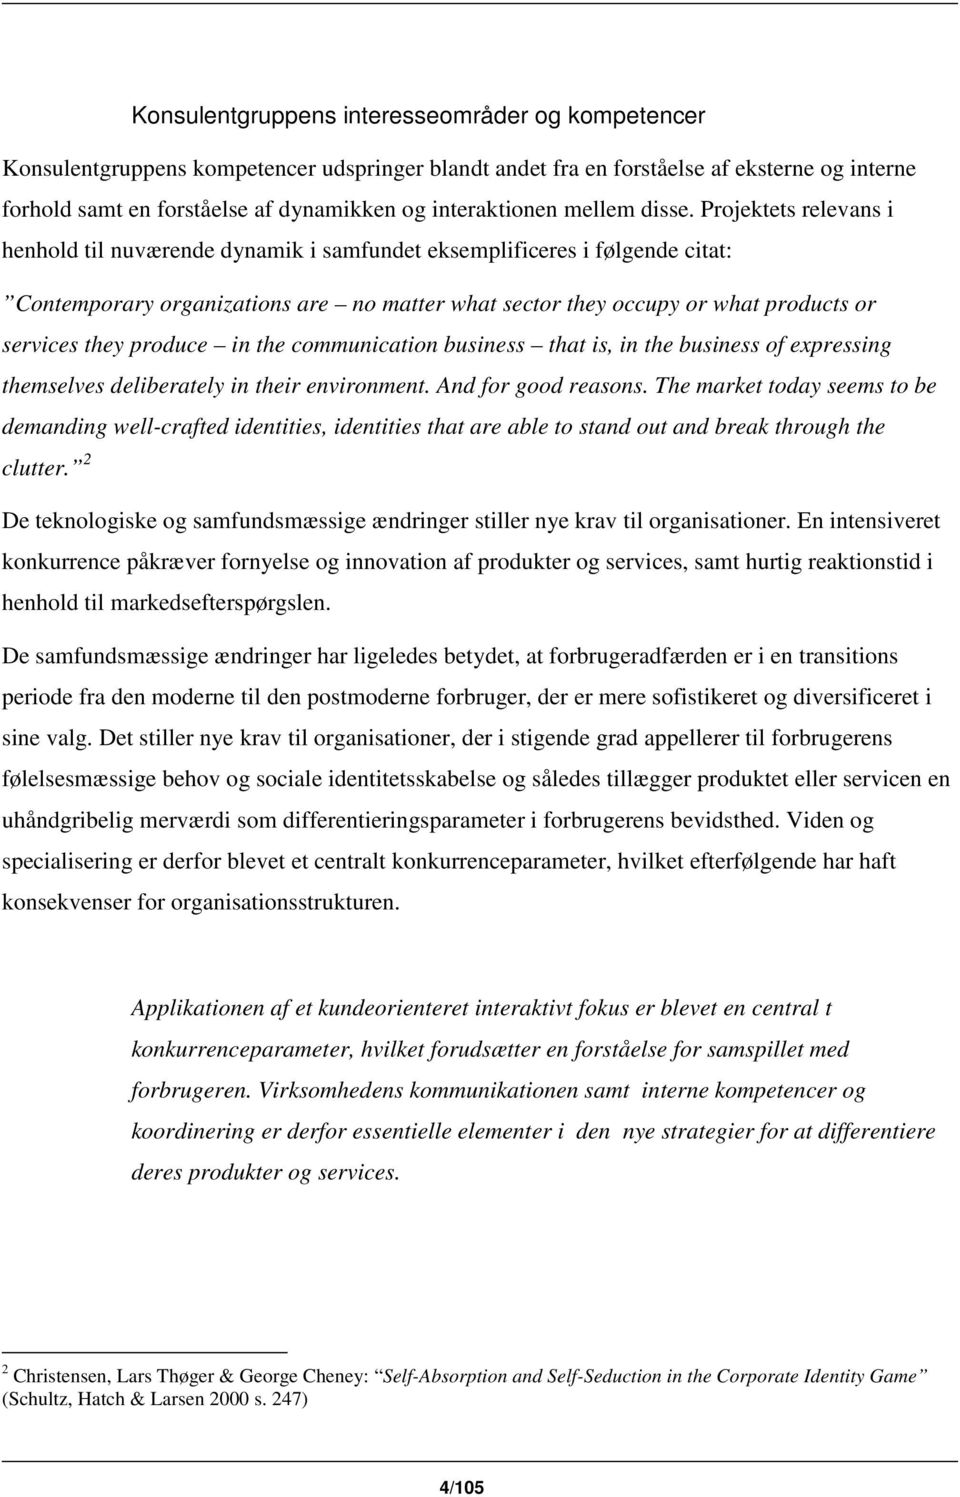 Projektets relevans i henhold til nuværende dynamik i samfundet eksemplificeres i følgende citat: Contemporary organizations are no matter what sector they occupy or what products or services they